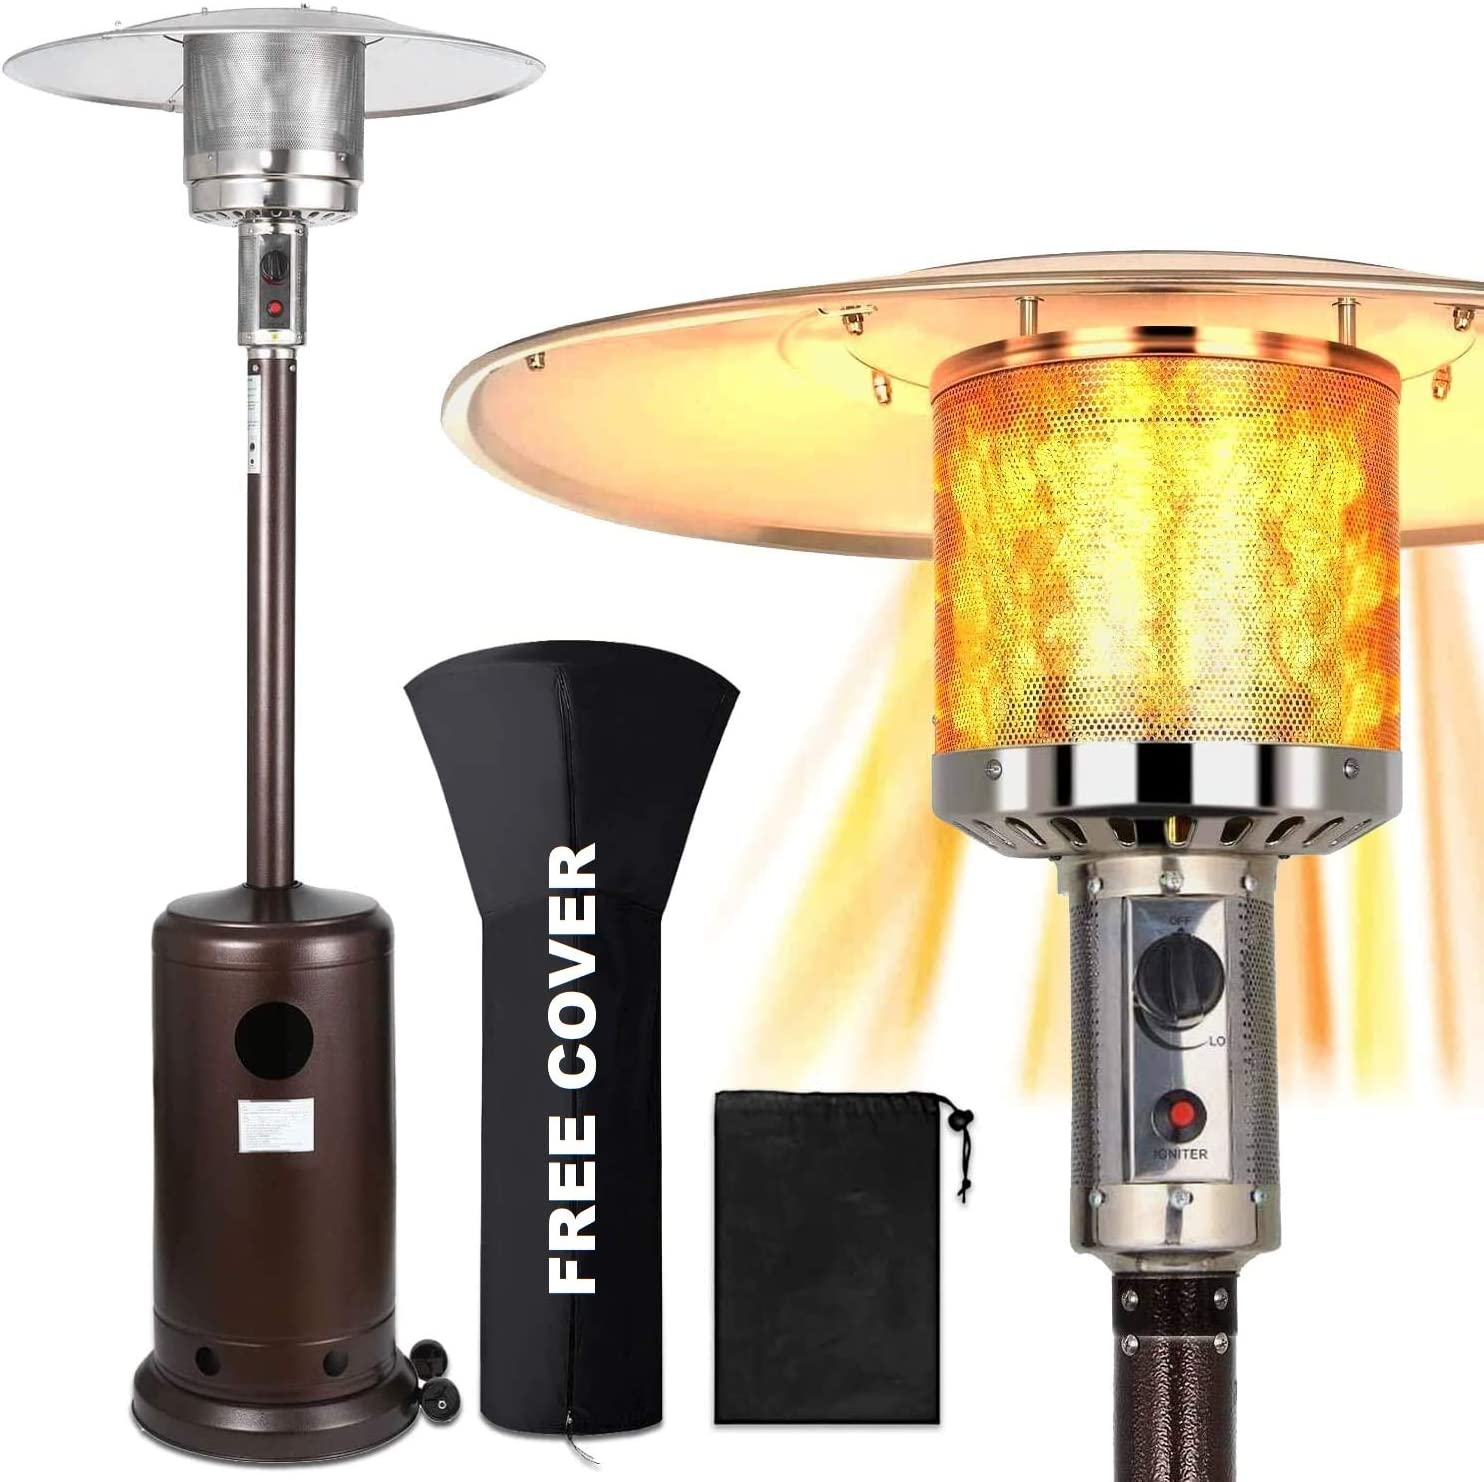 Outdoor Patio Propane Space Heater